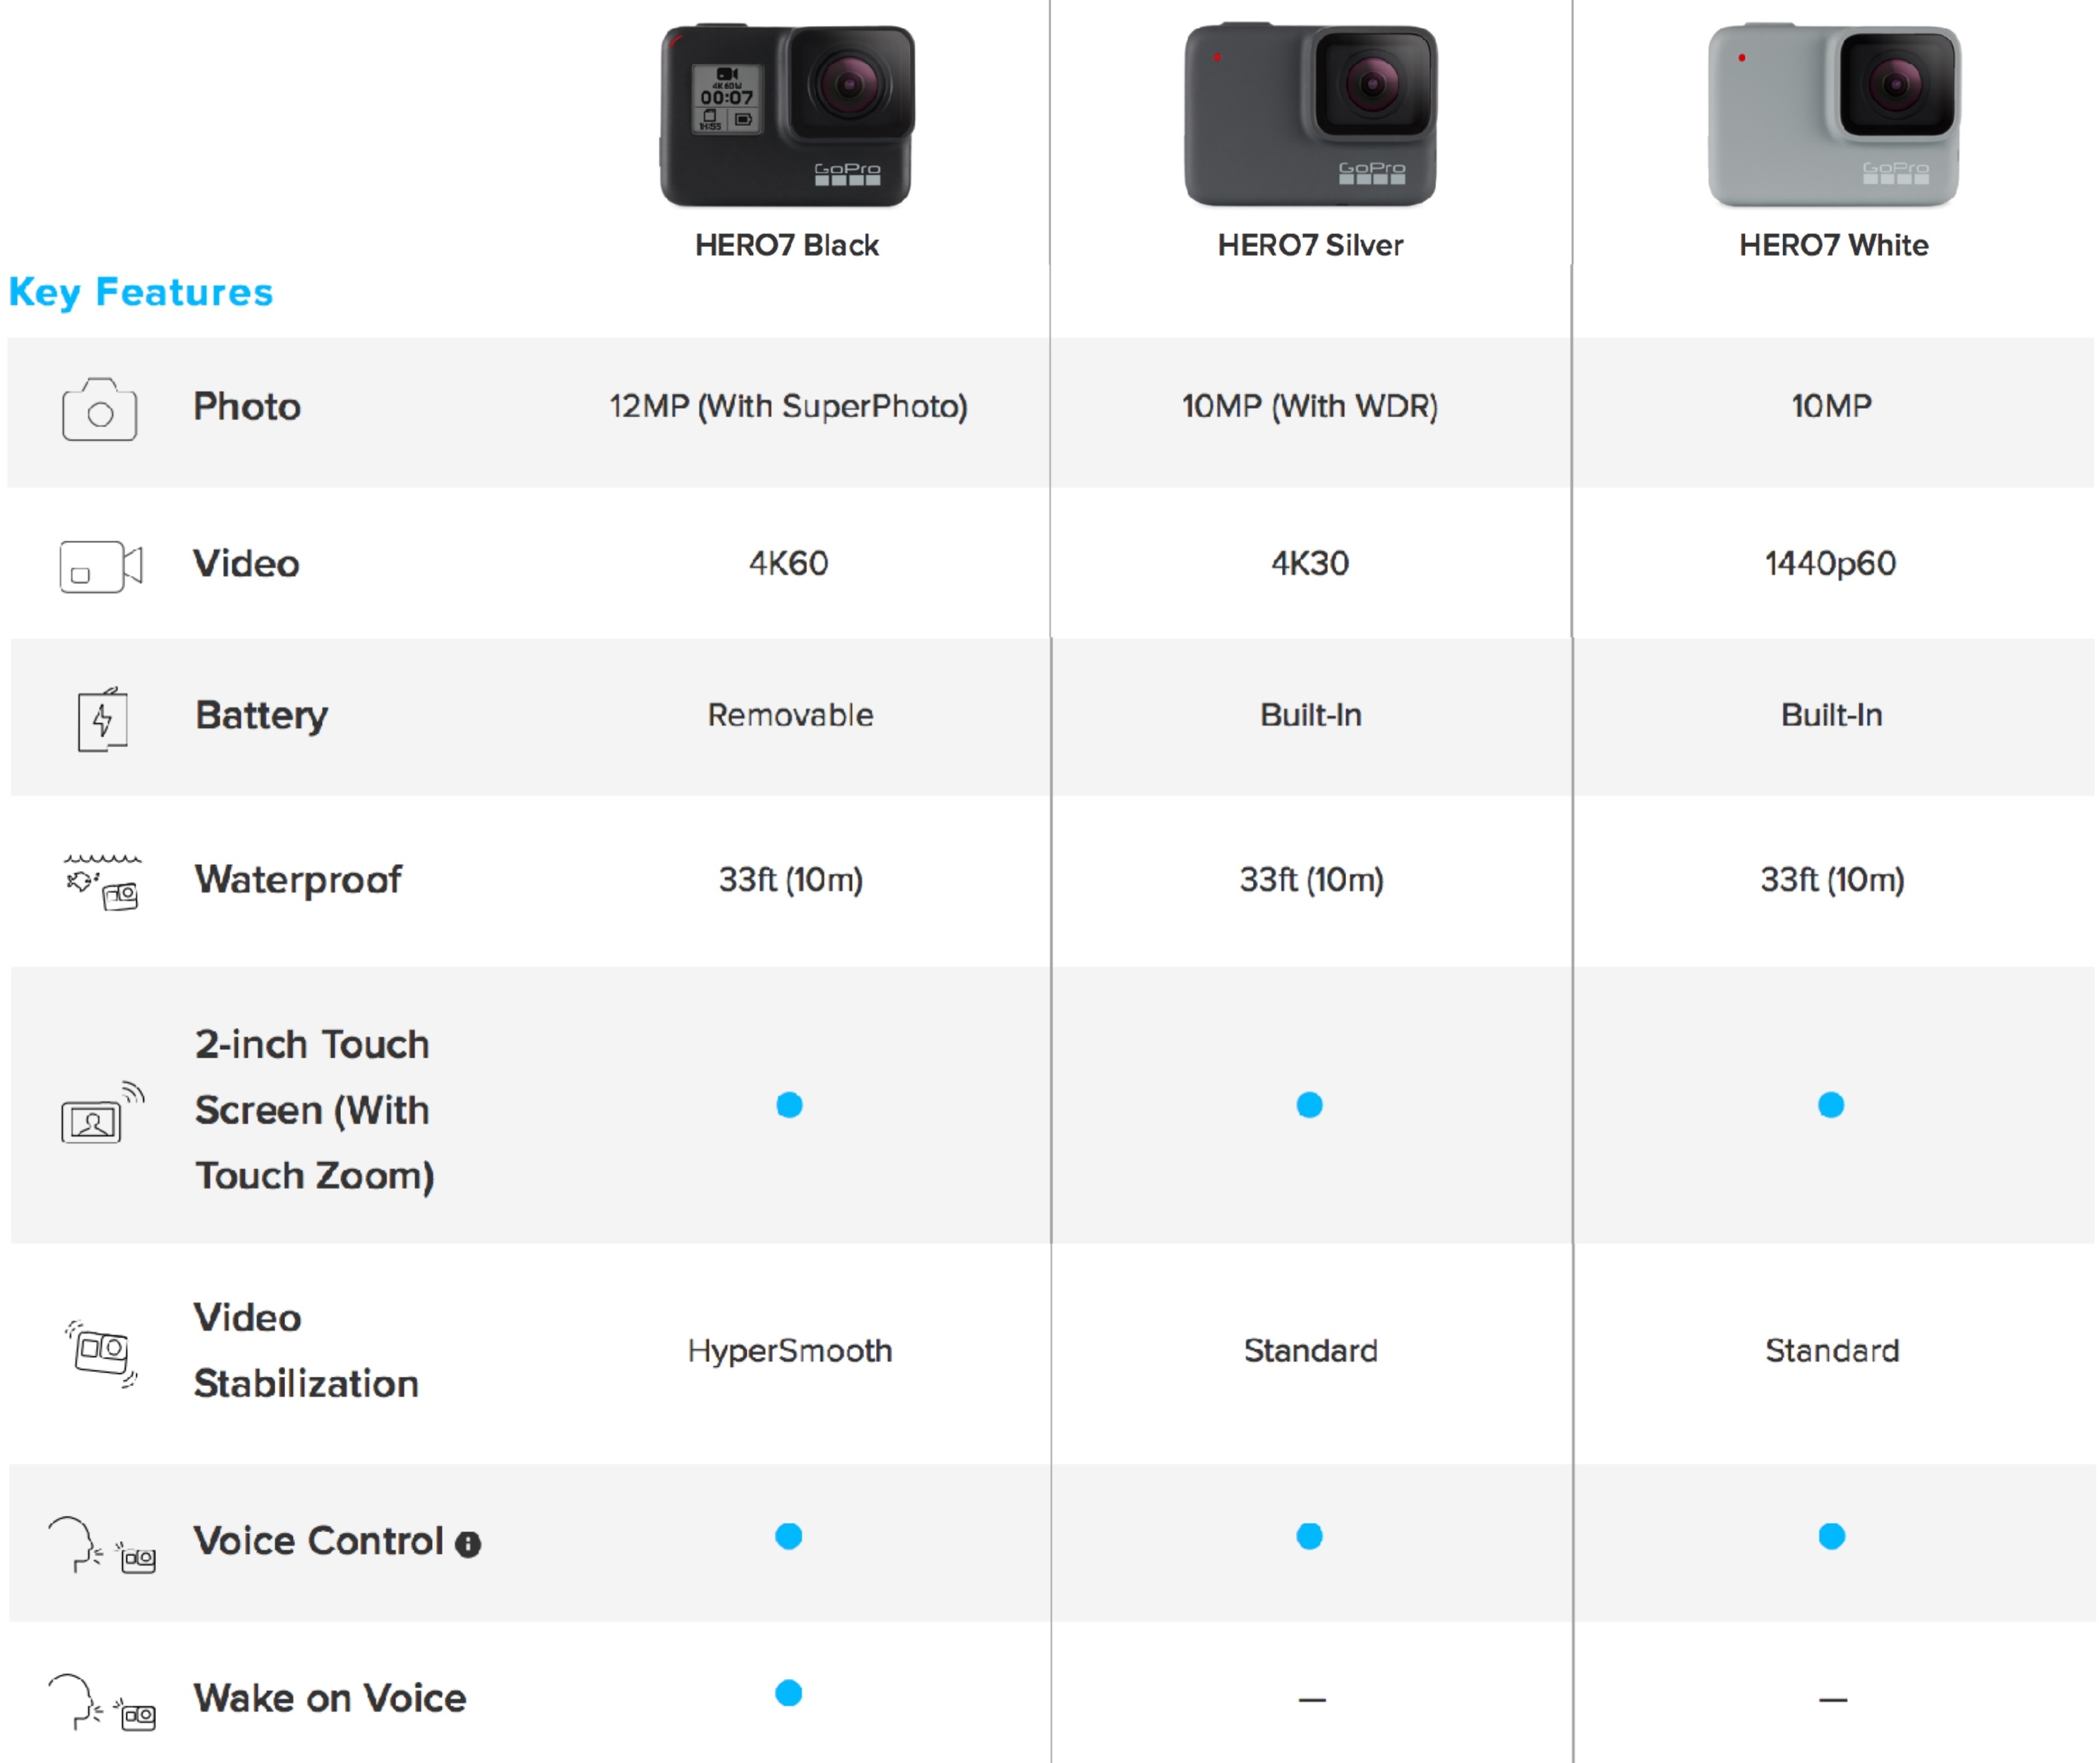 Comparisons between the three GoPro HERO7 cameras